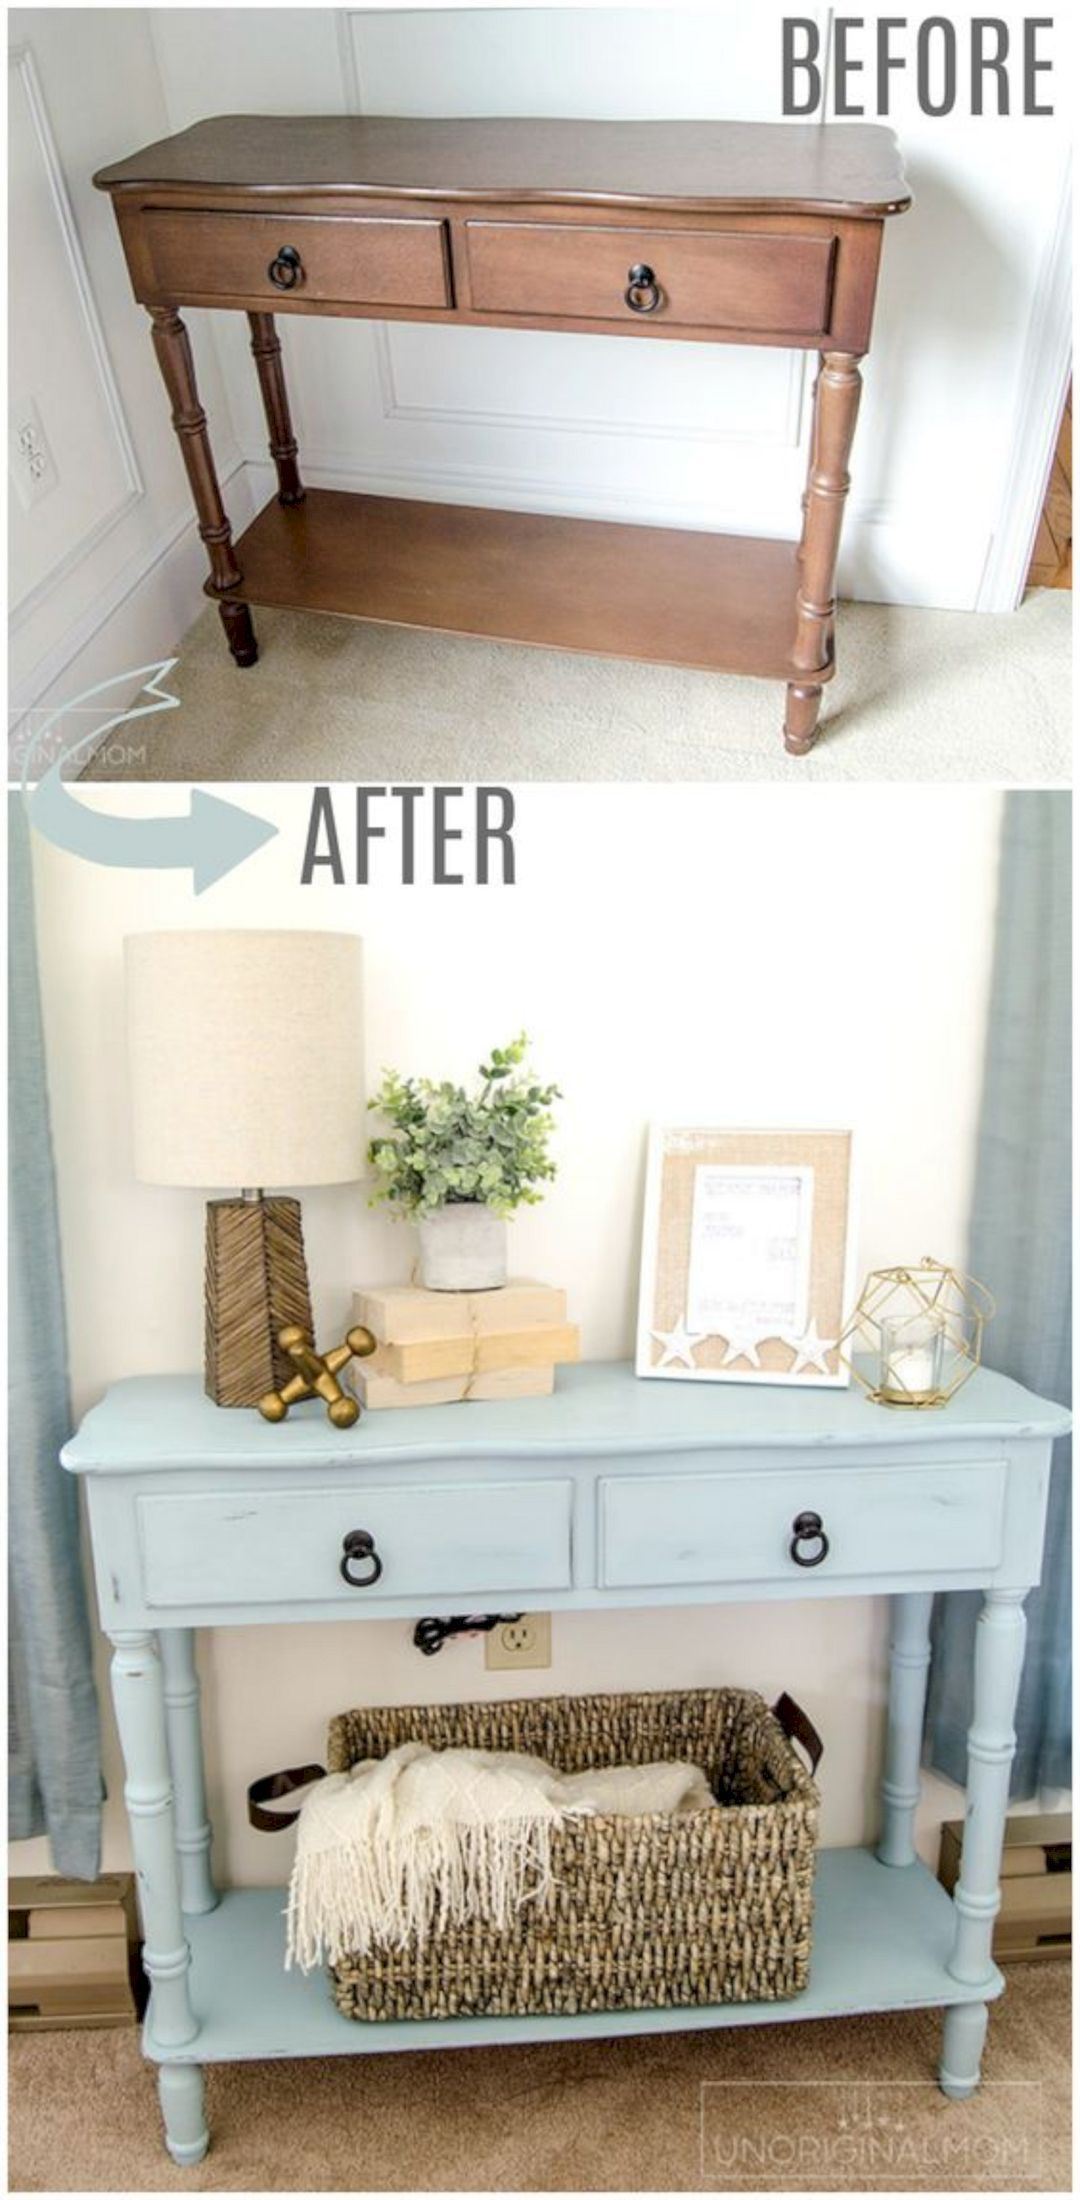 15 Amazing Refurbished Furniture Ideas You Should Try Out At Home